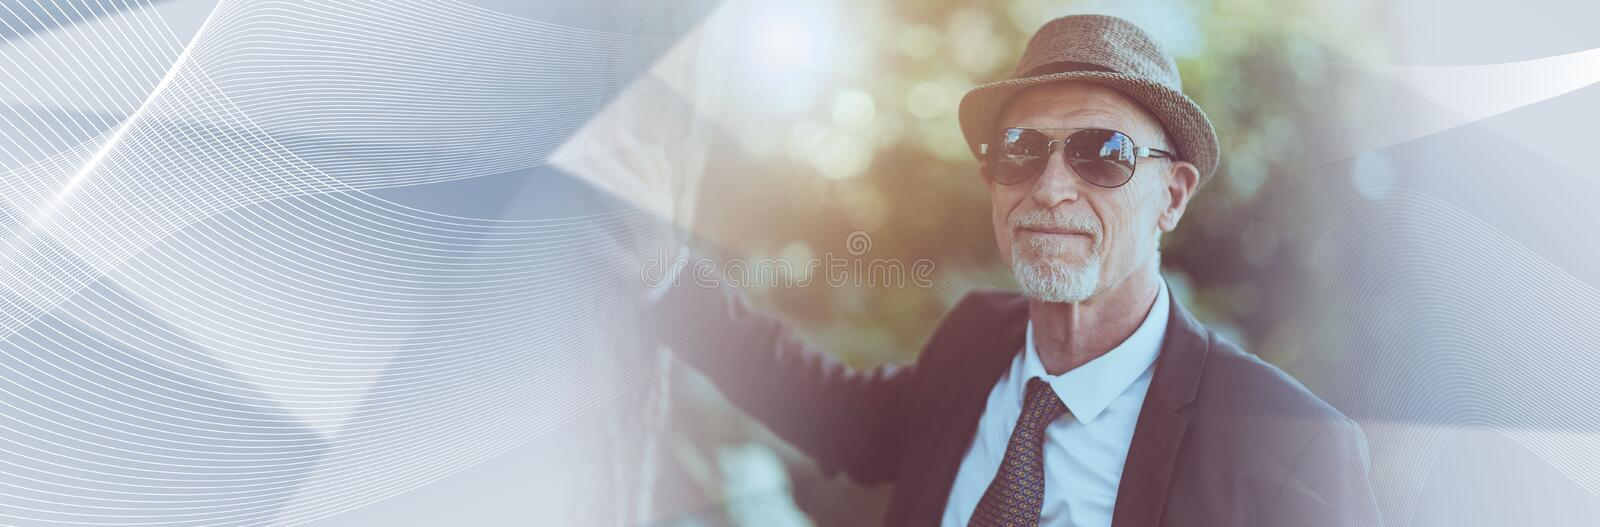 Portrait of mature man wearing sunglasses, light effect. panoramic banner stock photo